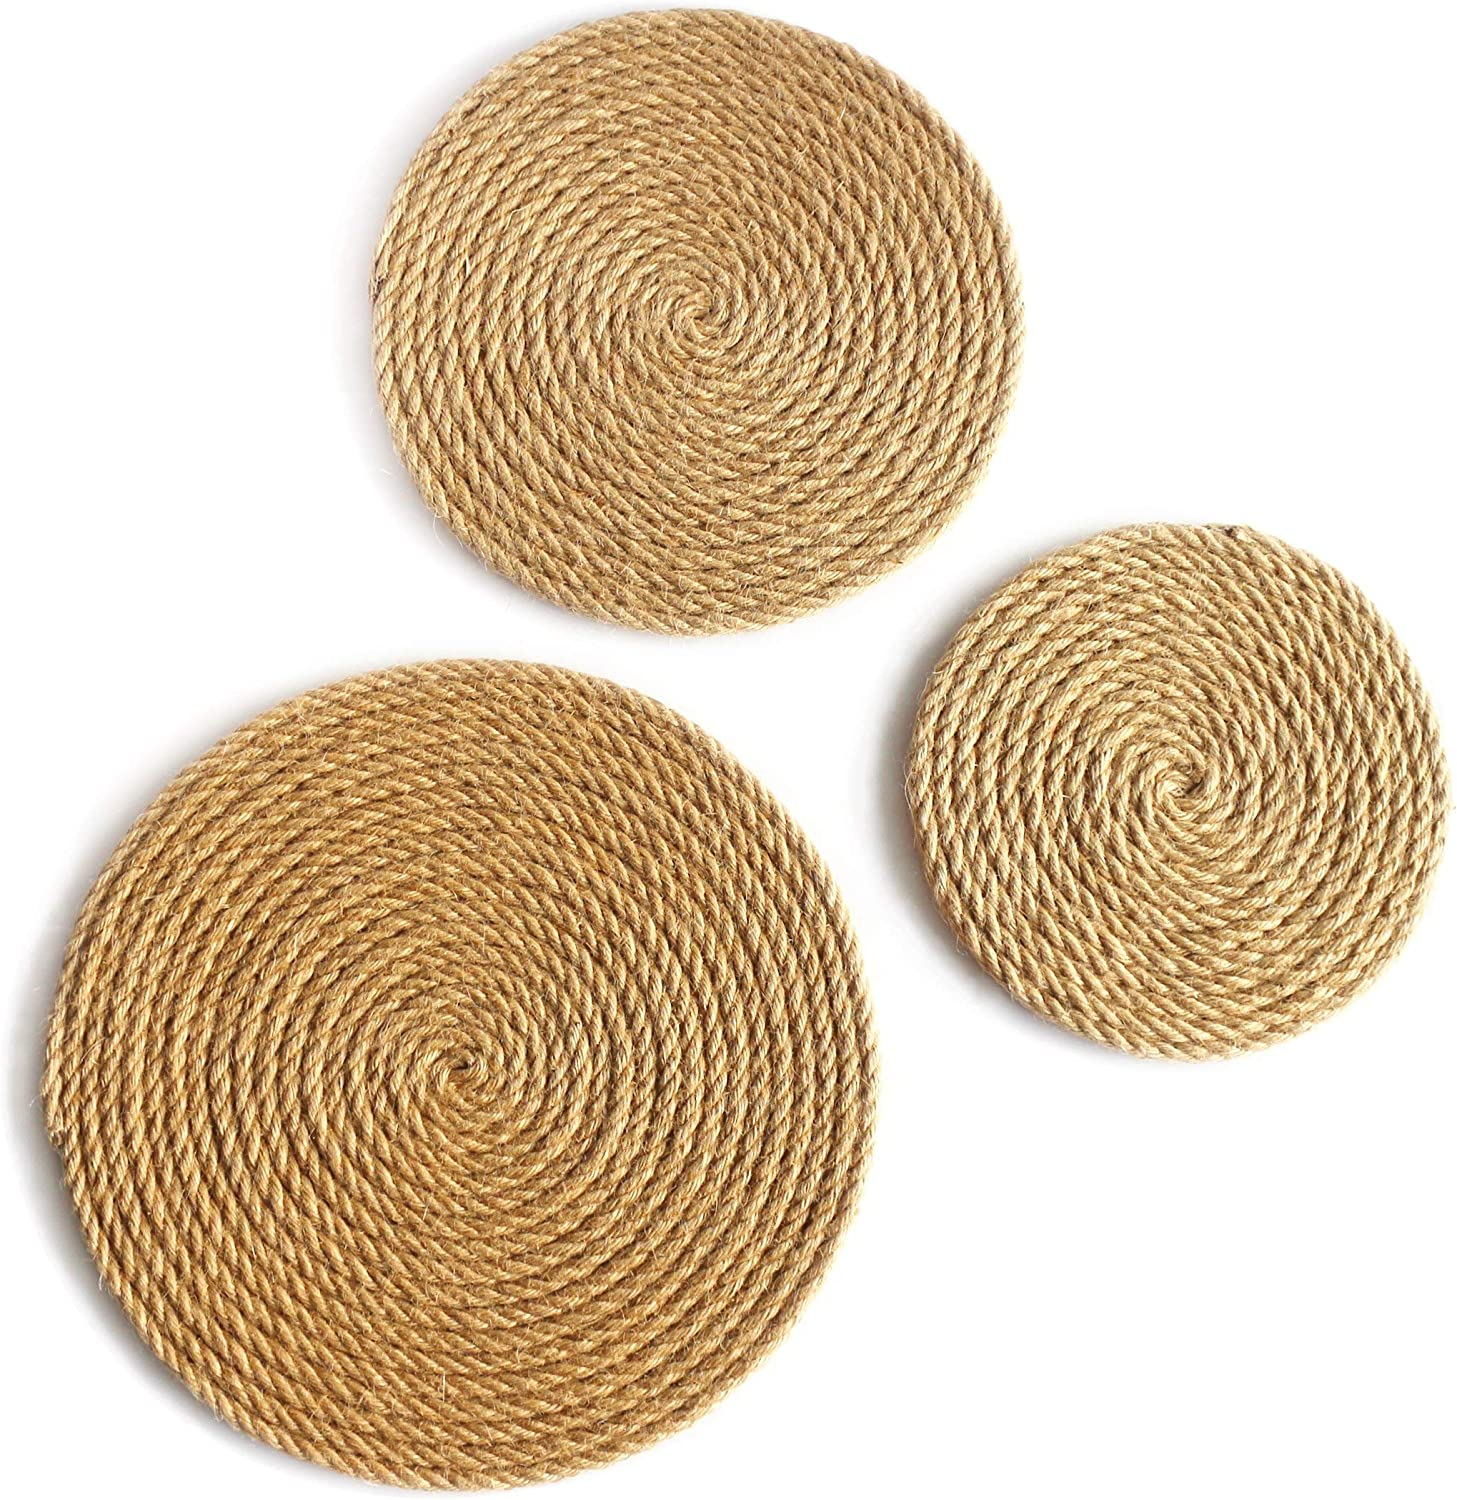 Amazon Com Cvhomedeco Rustic Hemp Rope Round Disc For Wall Hanging Indoor Diy Art Sculptures Home Office And Hotel Primitive Country Style Decor Set Of 3 12 10 8 Inch Everything Else